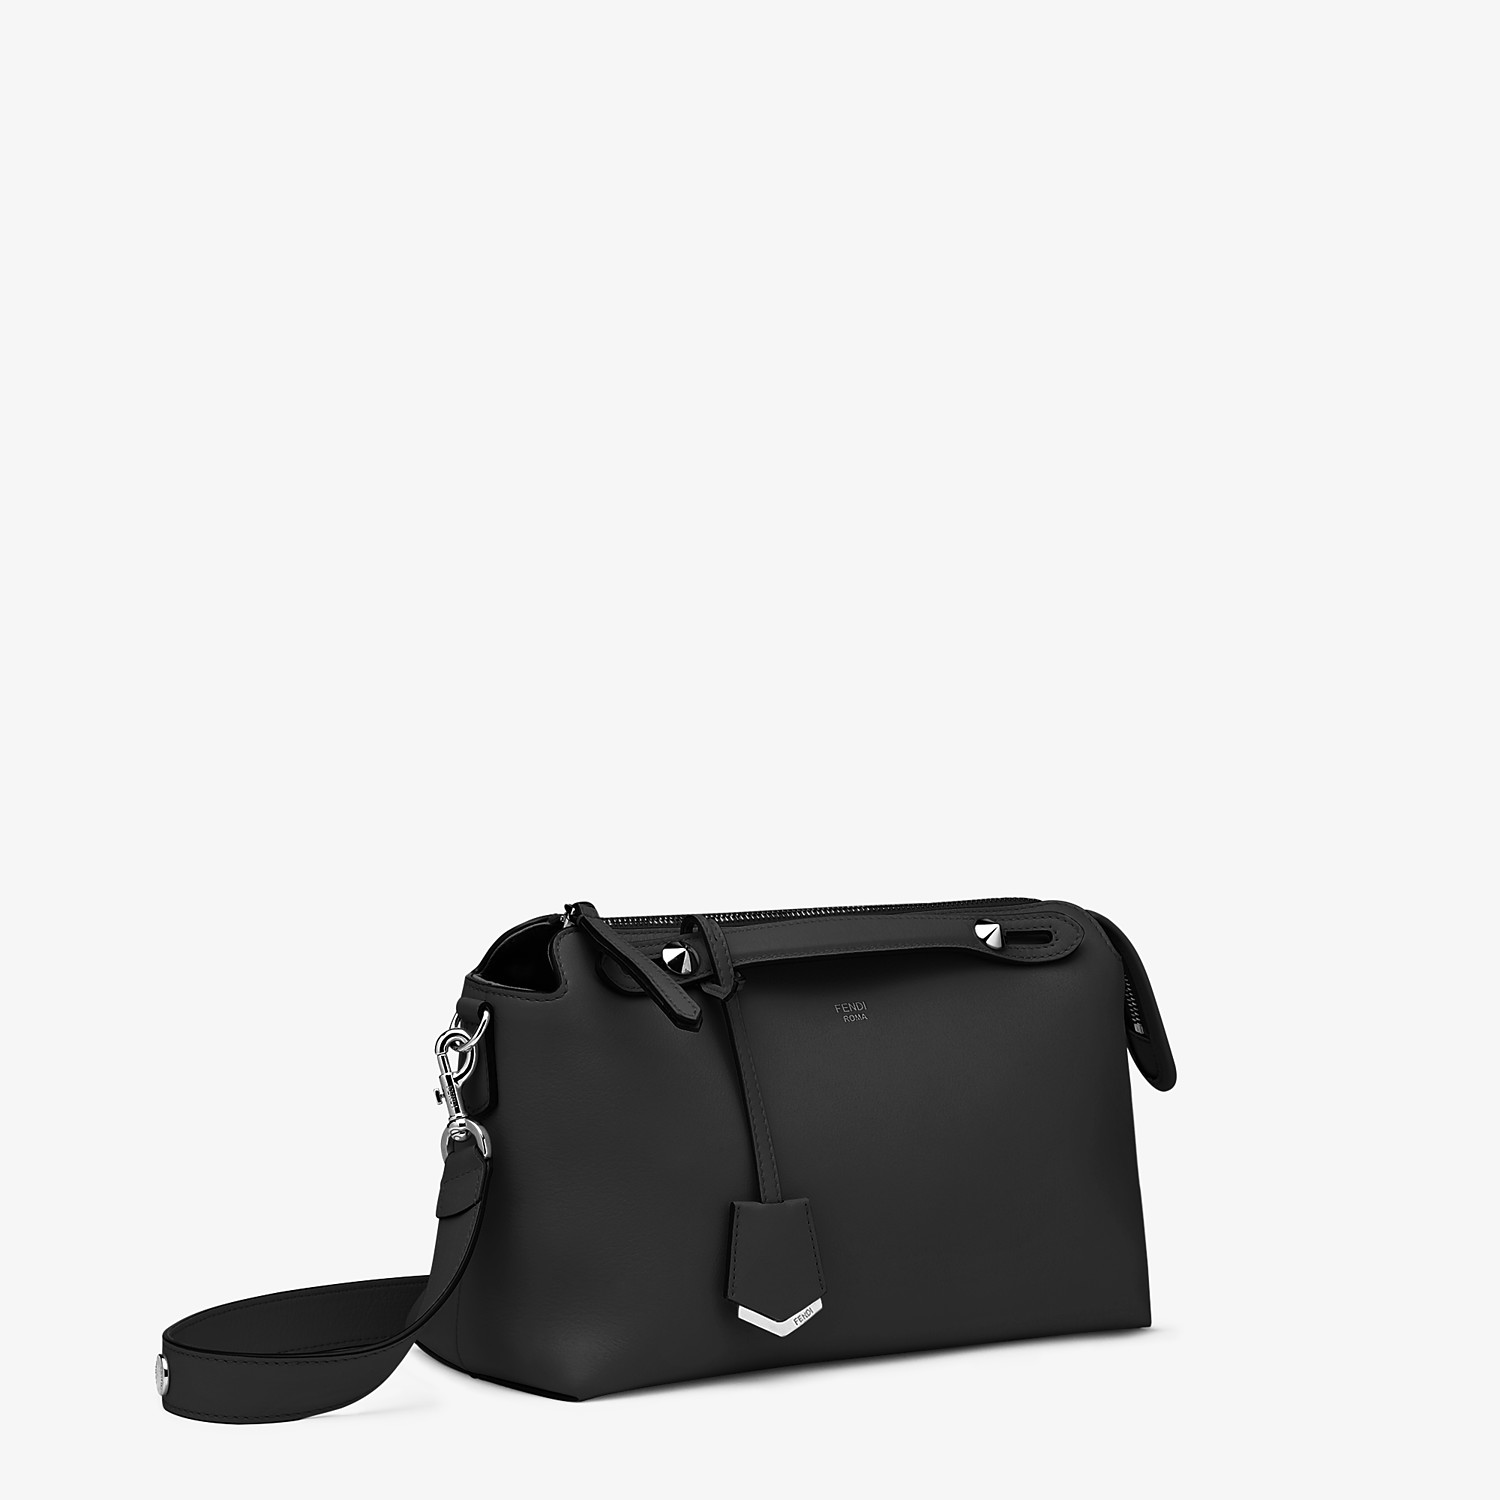 FENDI BY THE WAY MEDIUM - Black leather Boston bag - view 2 detail